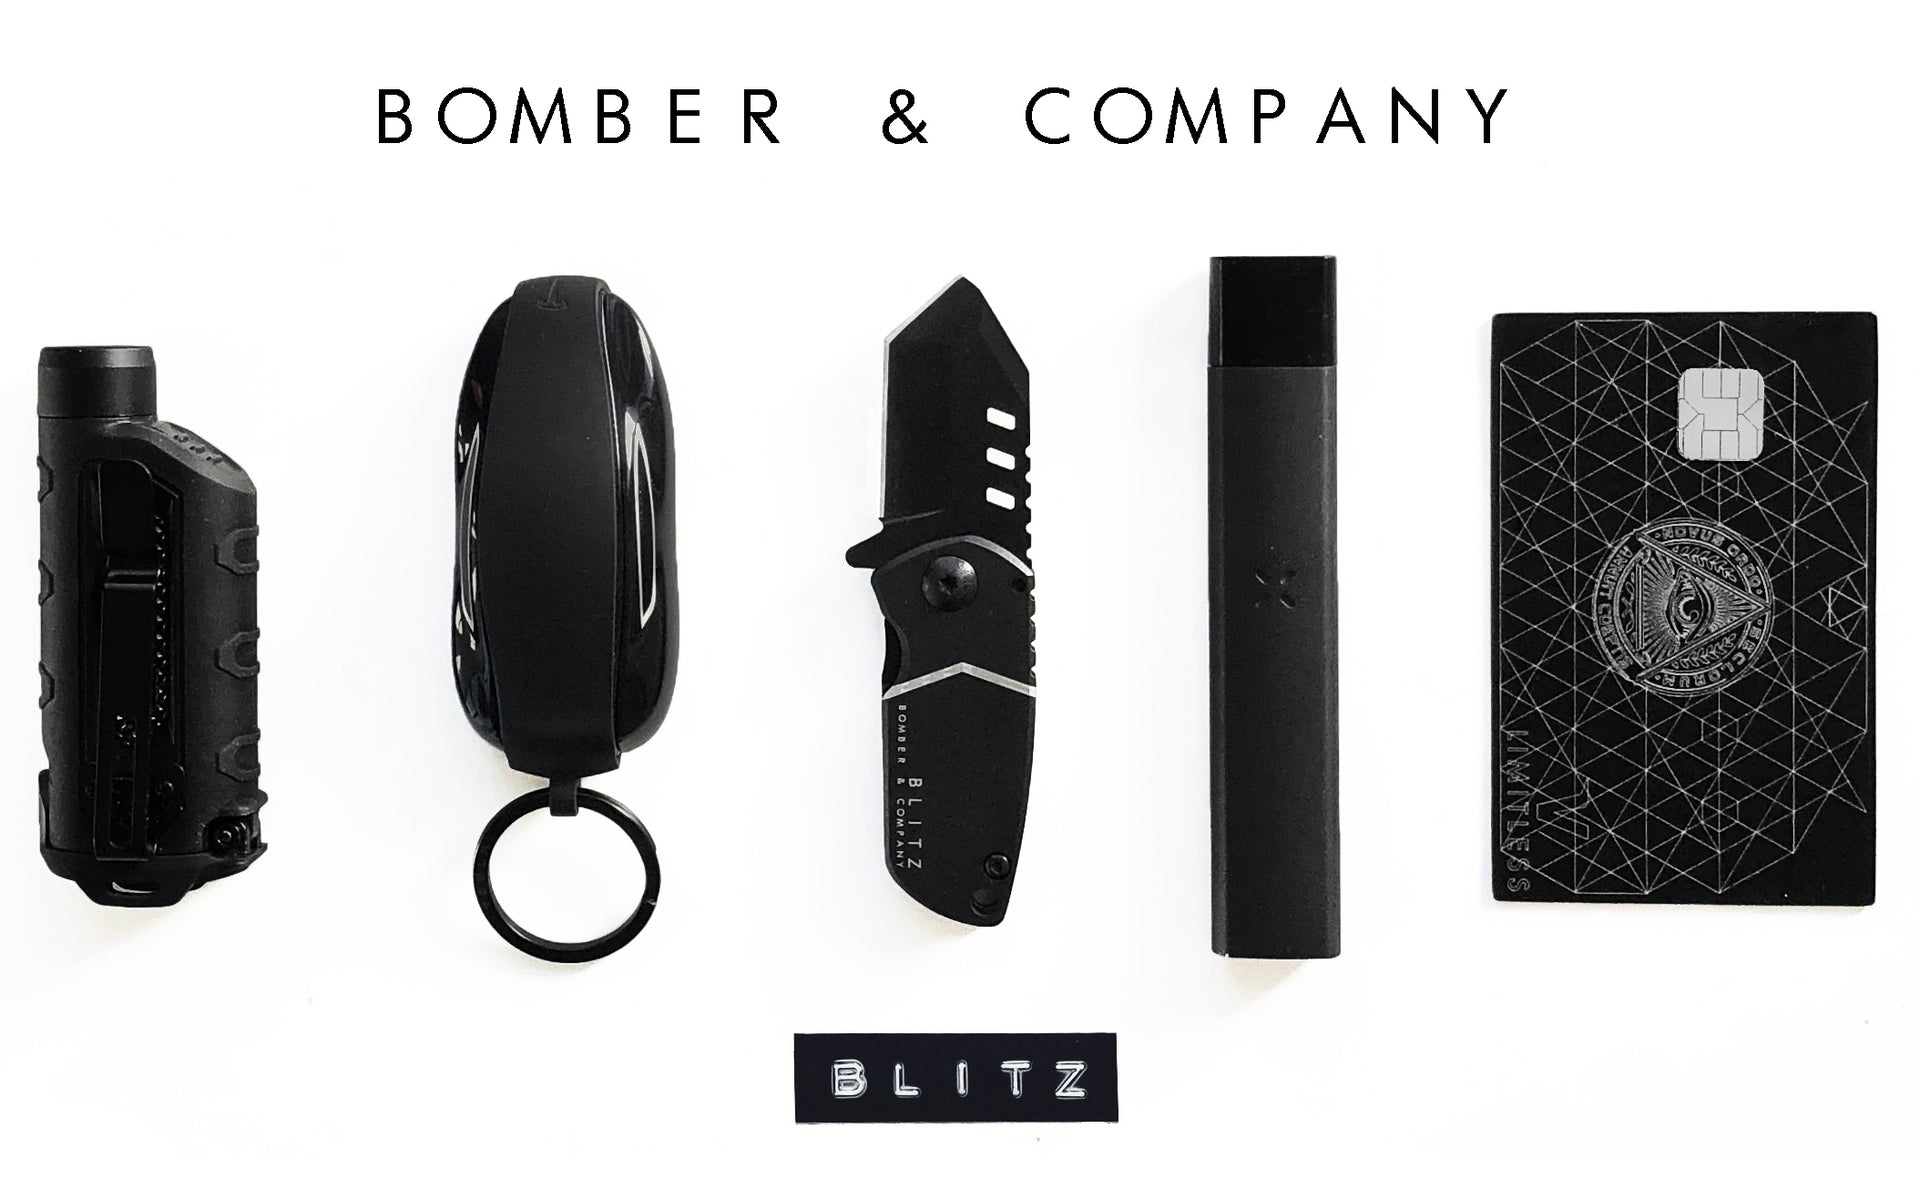 BLITZ Tactical Pocket Knife (Straight Edge)